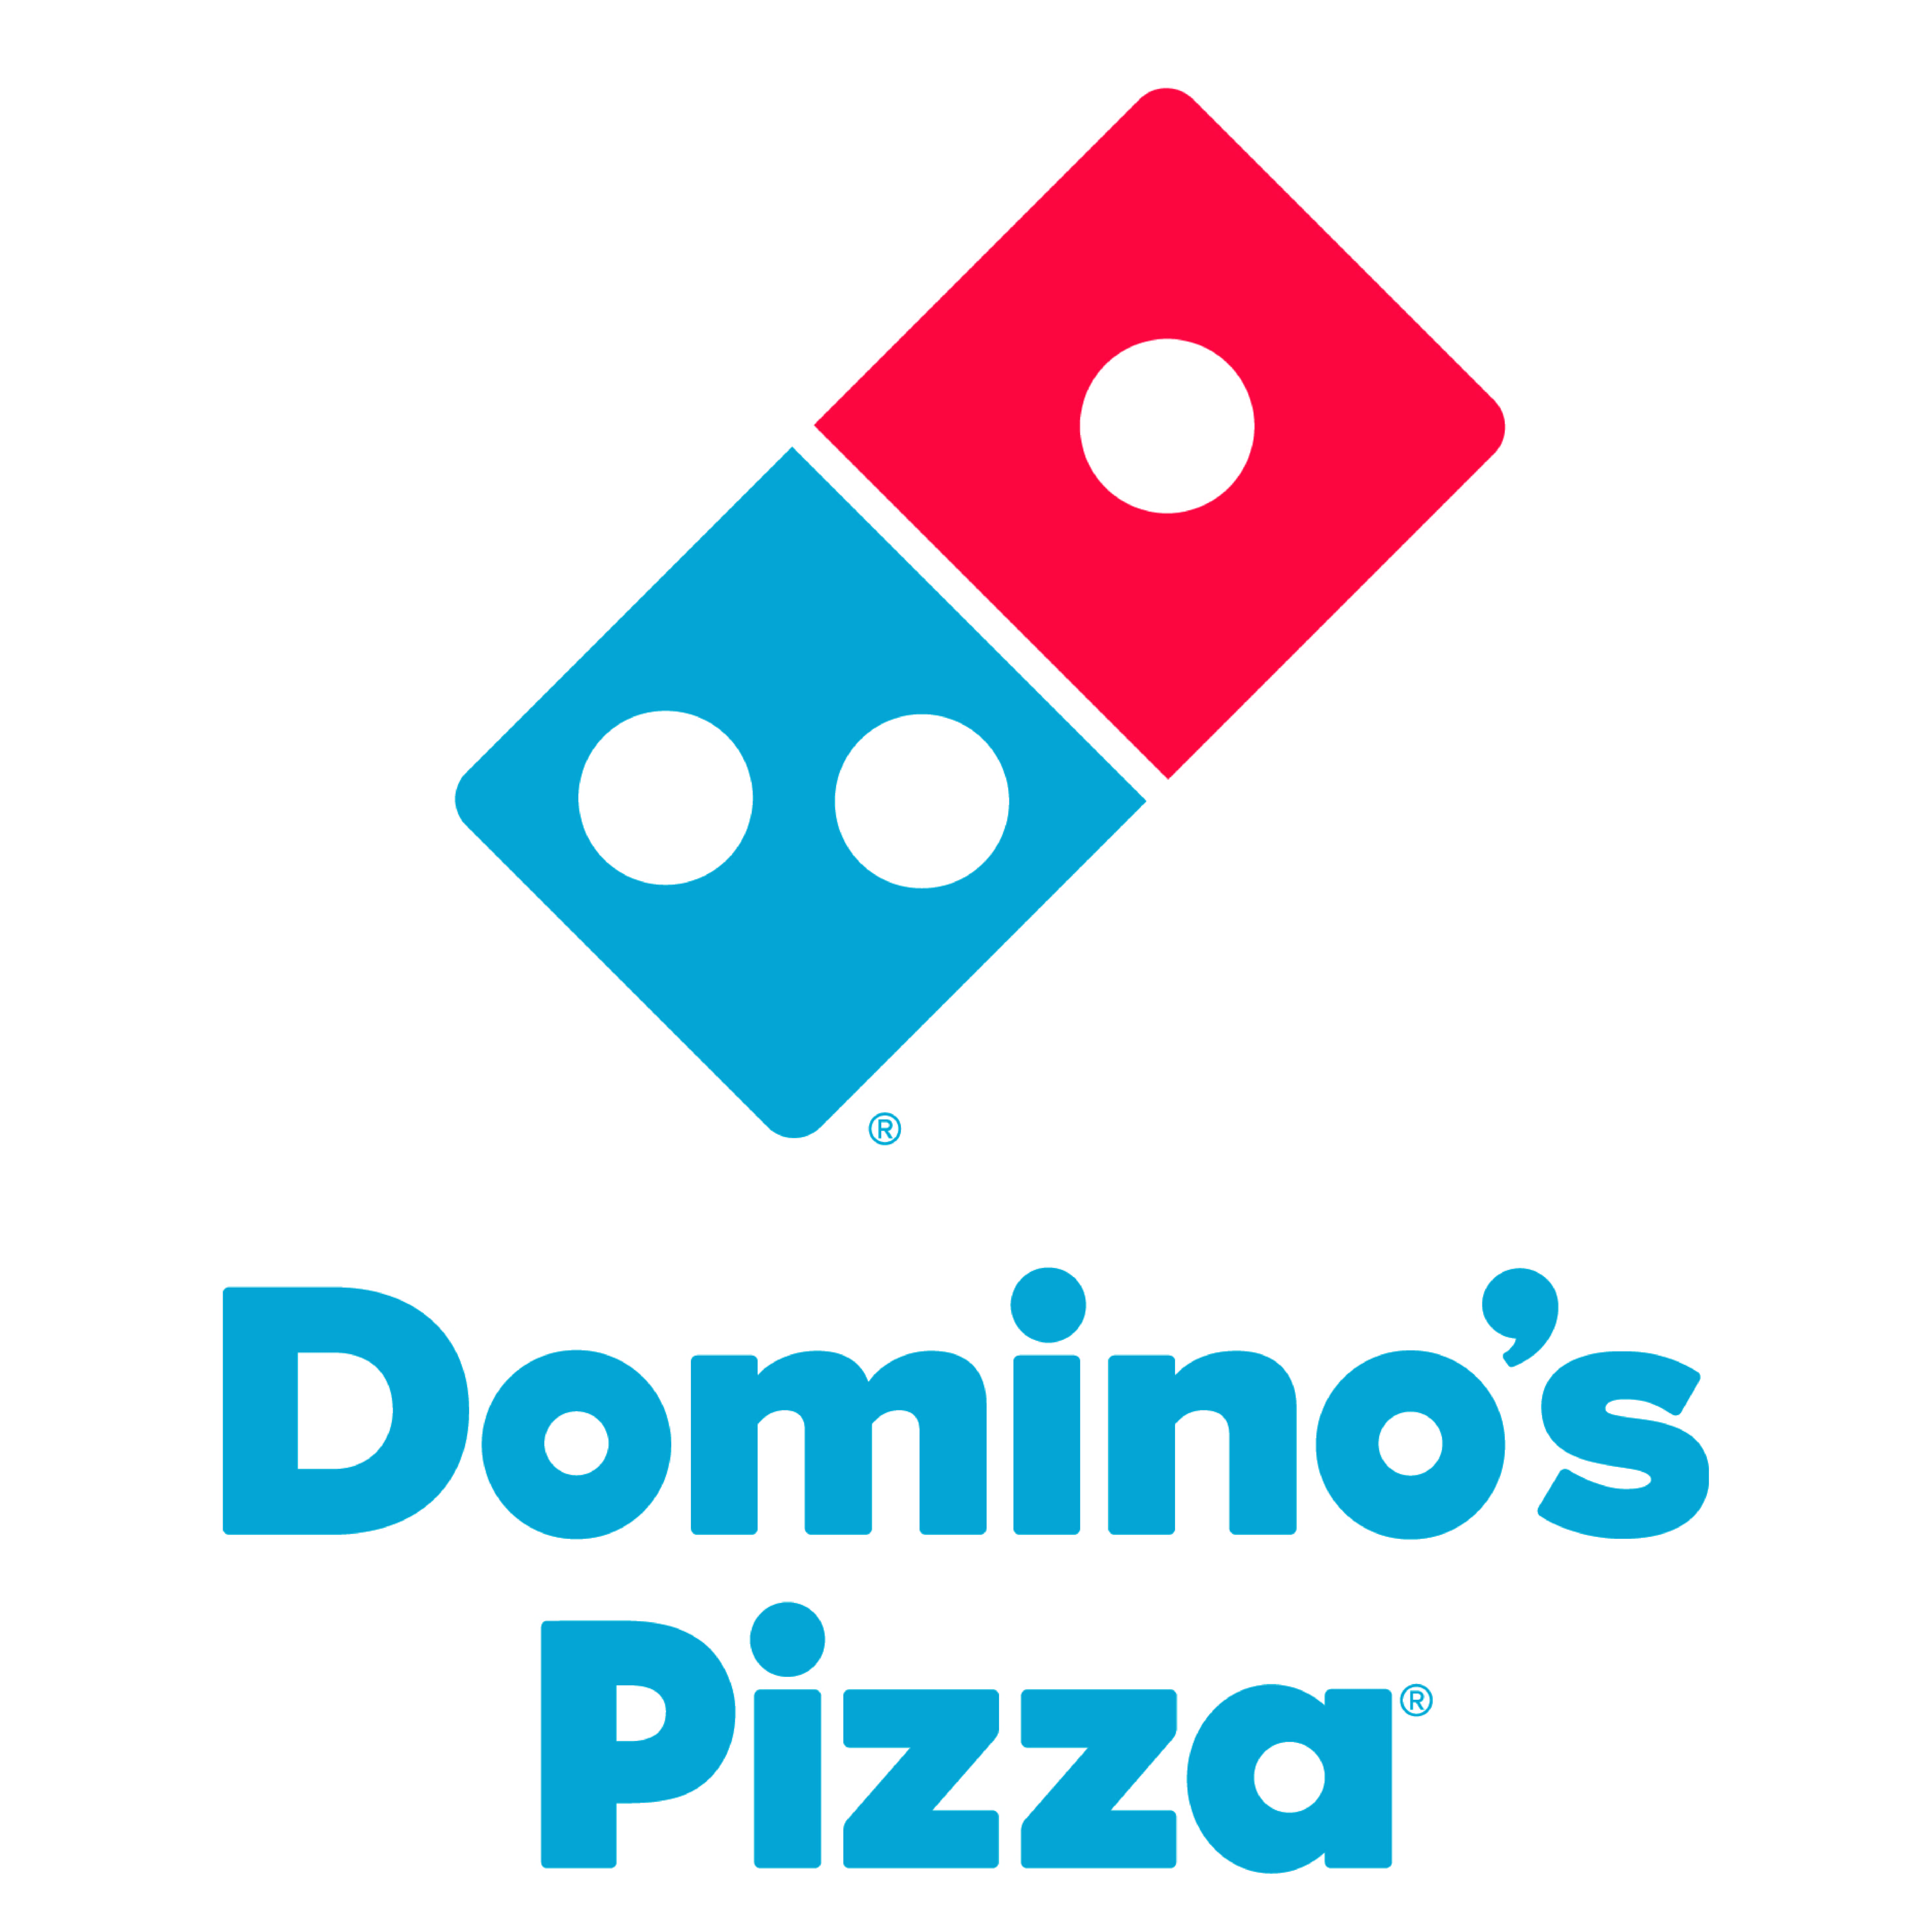 """<span style=""""color:red;"""">Save money on your next Pizza </span><br />Domino's Pizza: Enjoy the best Pizzas in town for less!"""